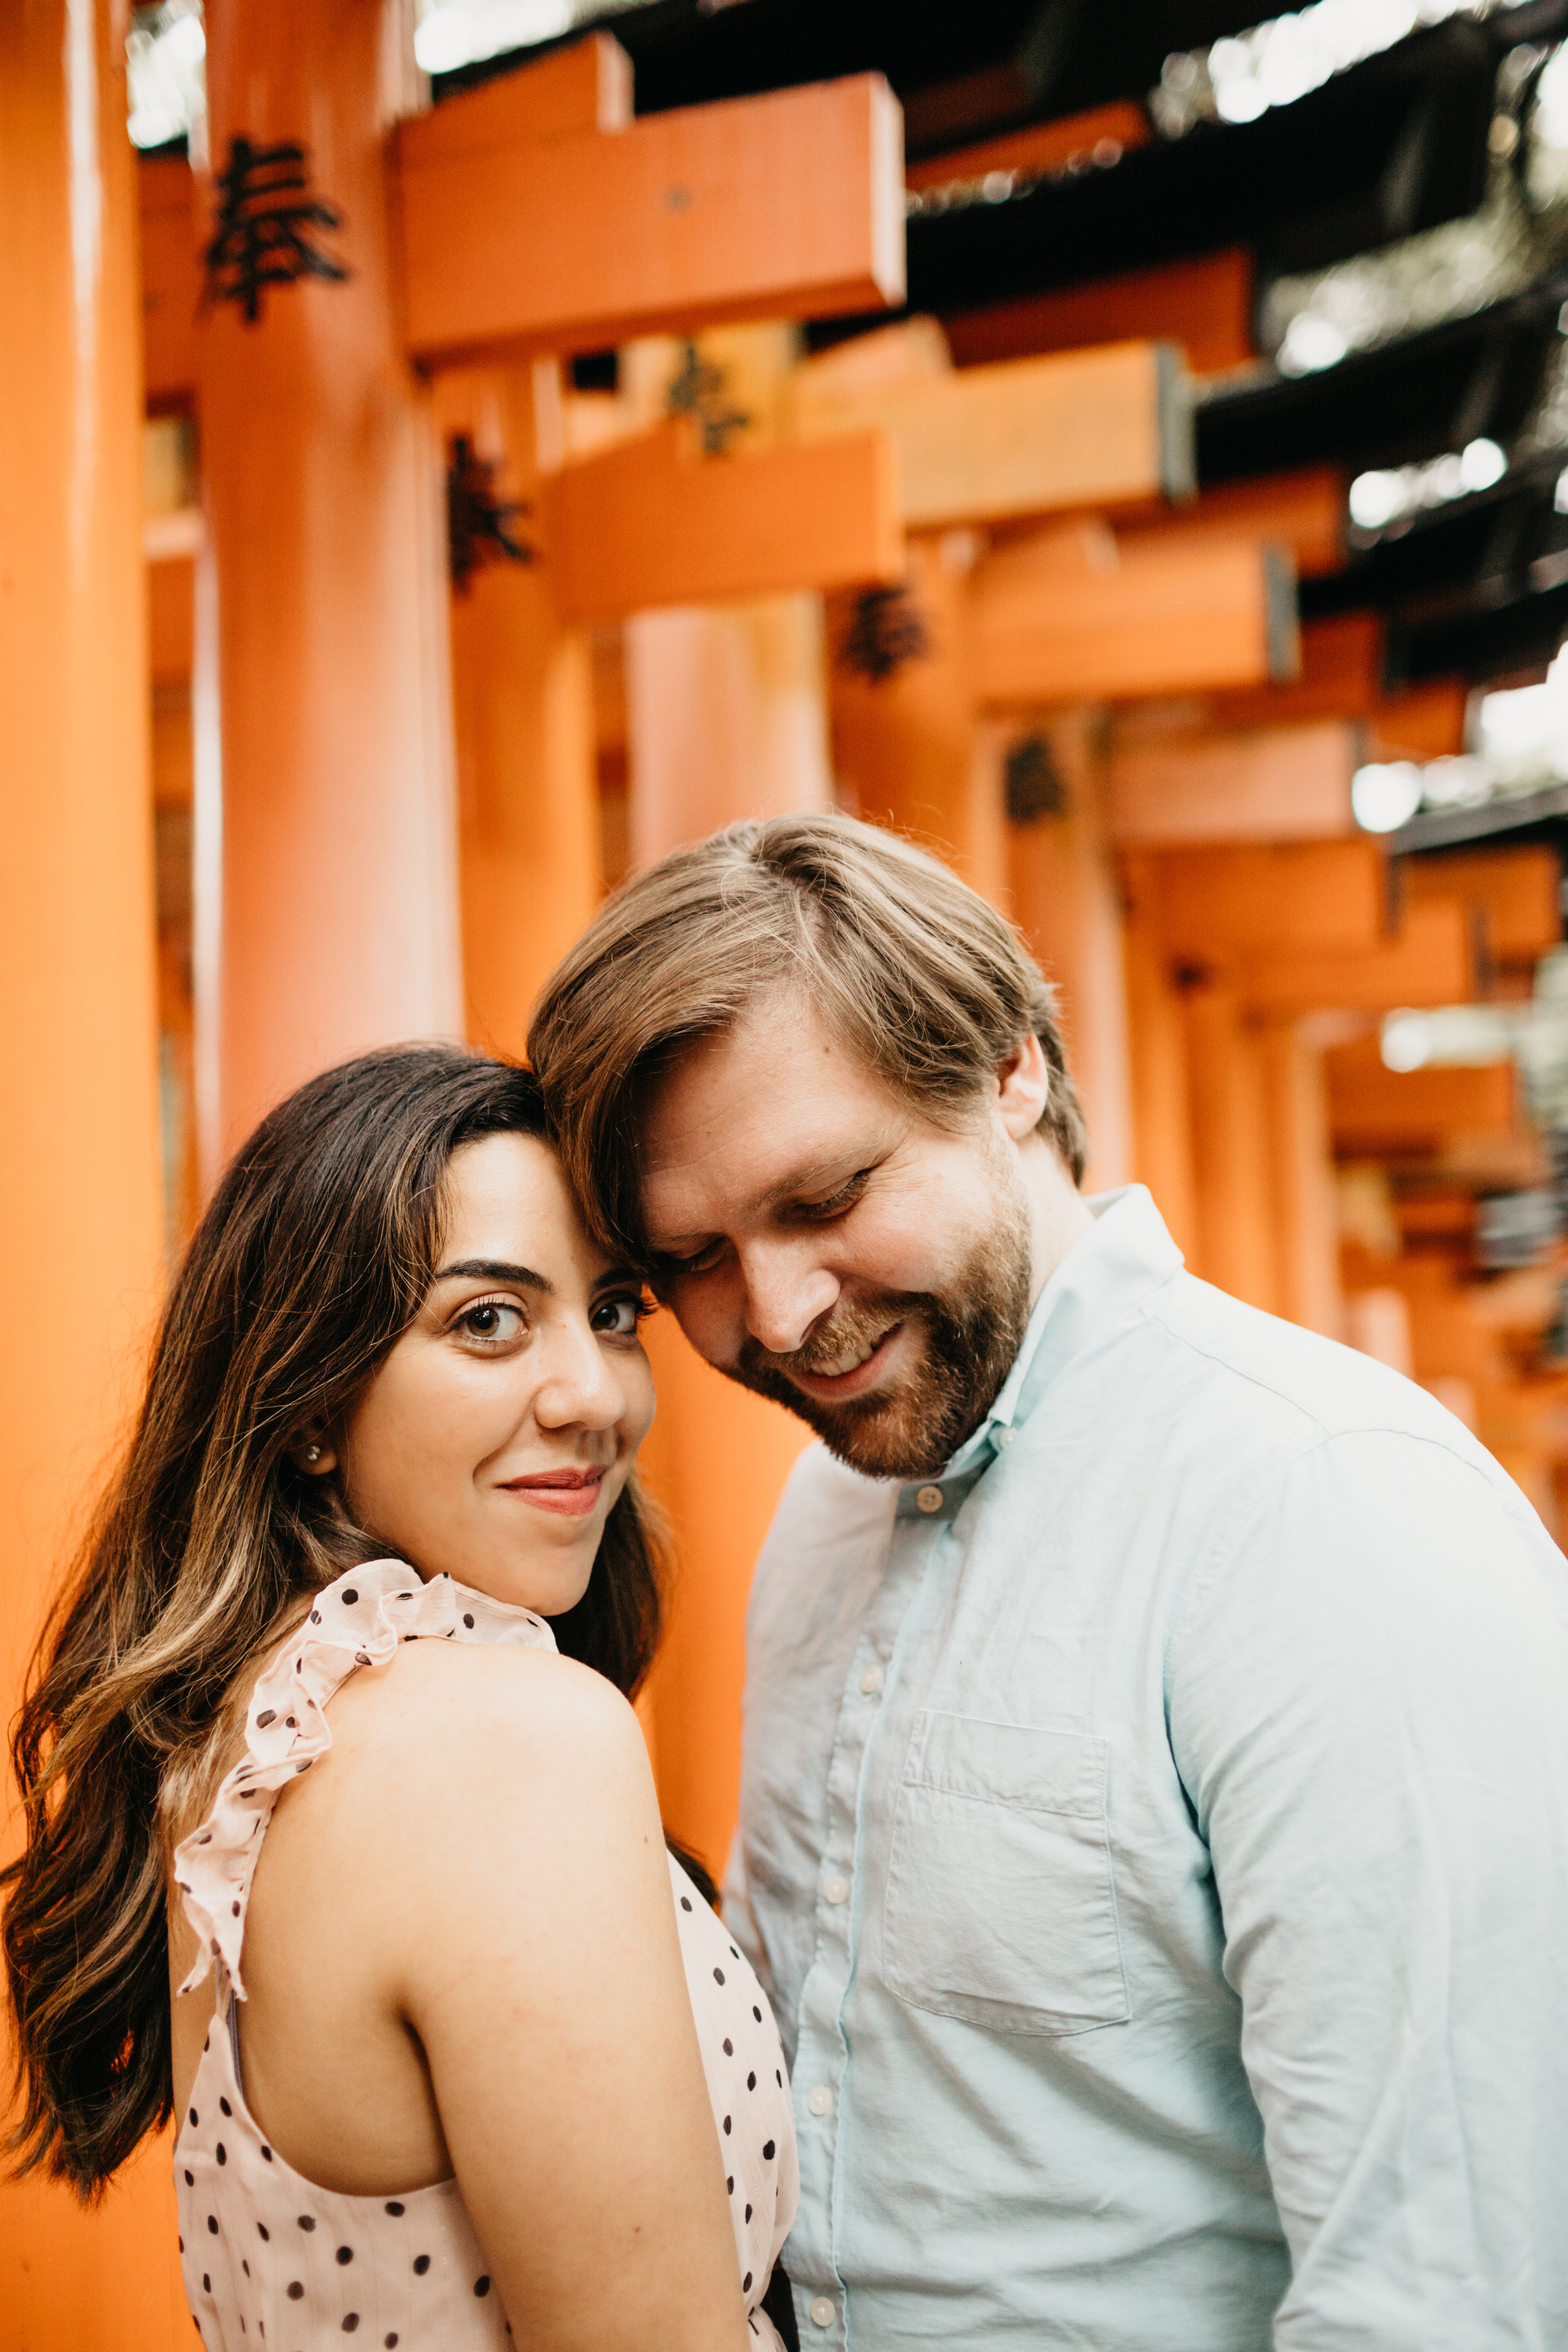 fushimi_inari_shrine_kyoto_couples_session_pictures_by_samantha_look-3.jpg